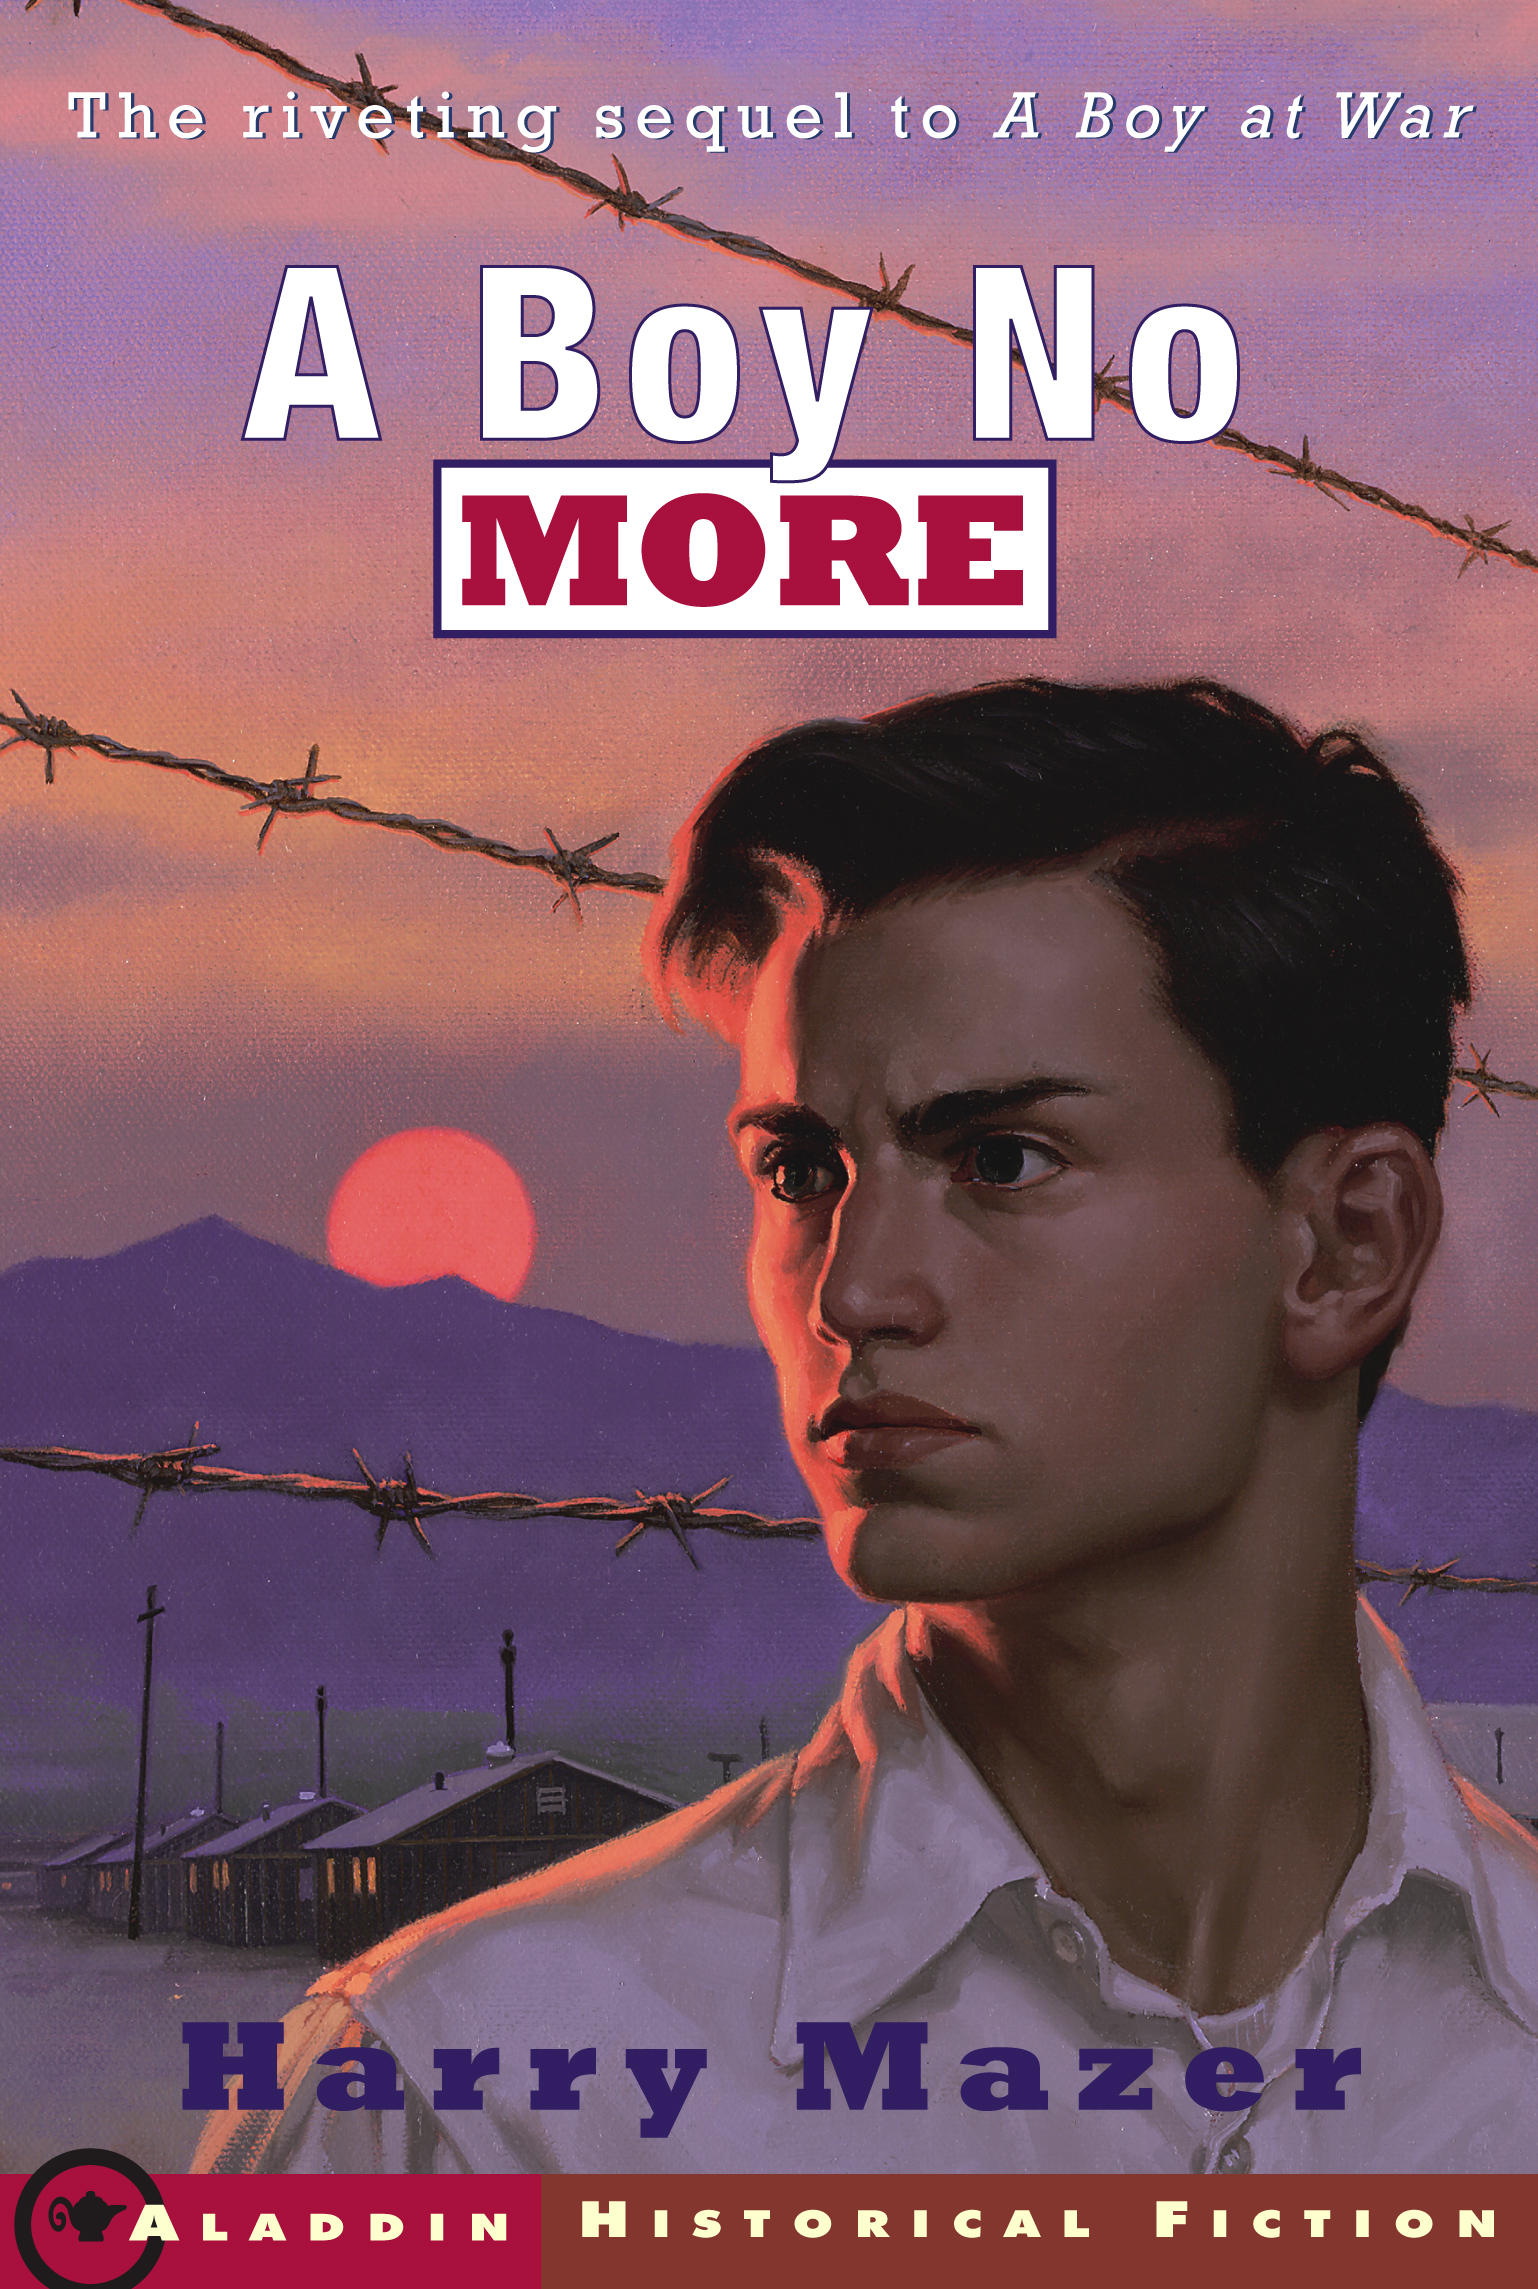 boy no more harry mazer Buy the paperback book a boy no more by harry mazer at indigoca, canada's largest bookstore + get free shipping on fiction and literature books over $25.